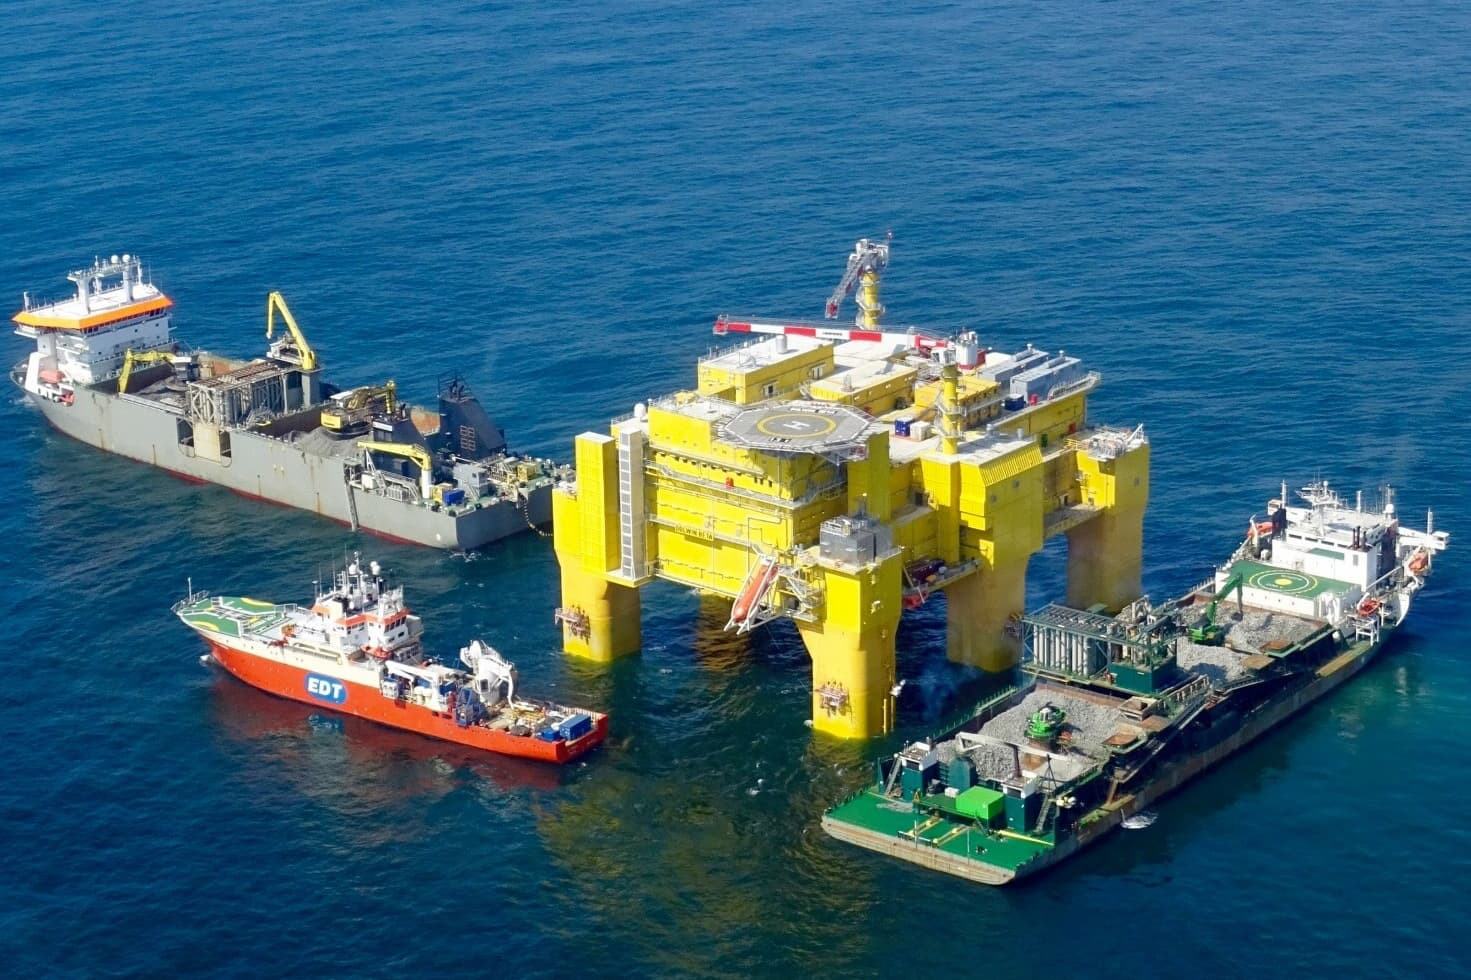 Fallpipe vessels Rockpiper, Seahorse and diving support vessel Protea working simultaneously